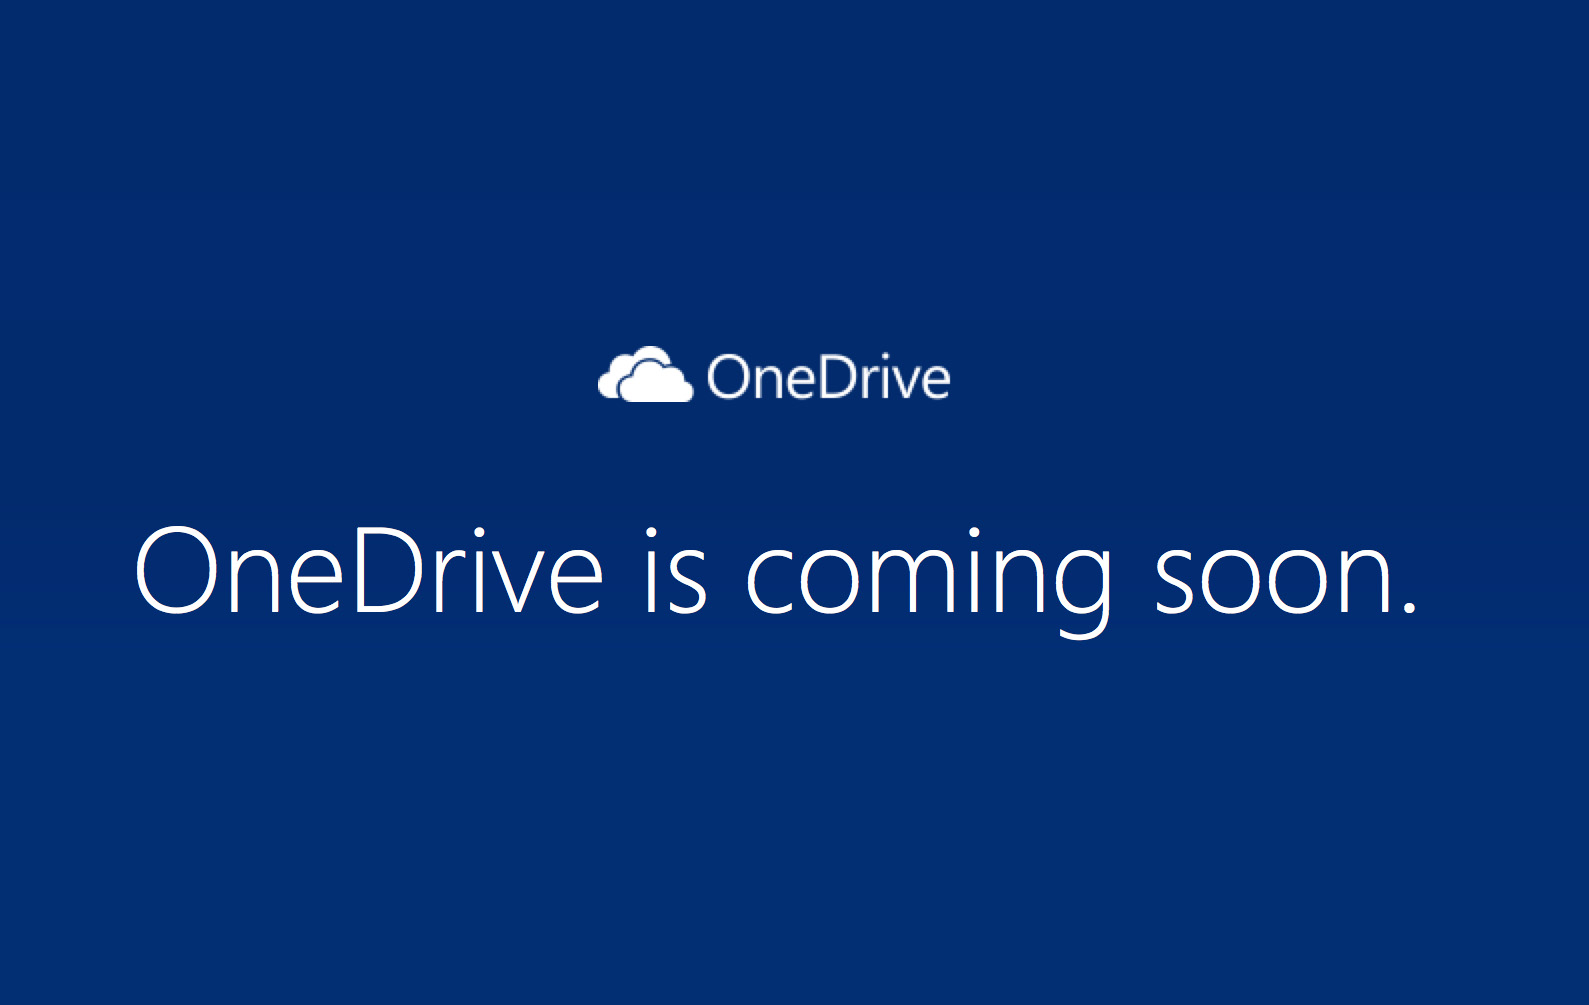 microsoft onedrive for business vbsitservices com